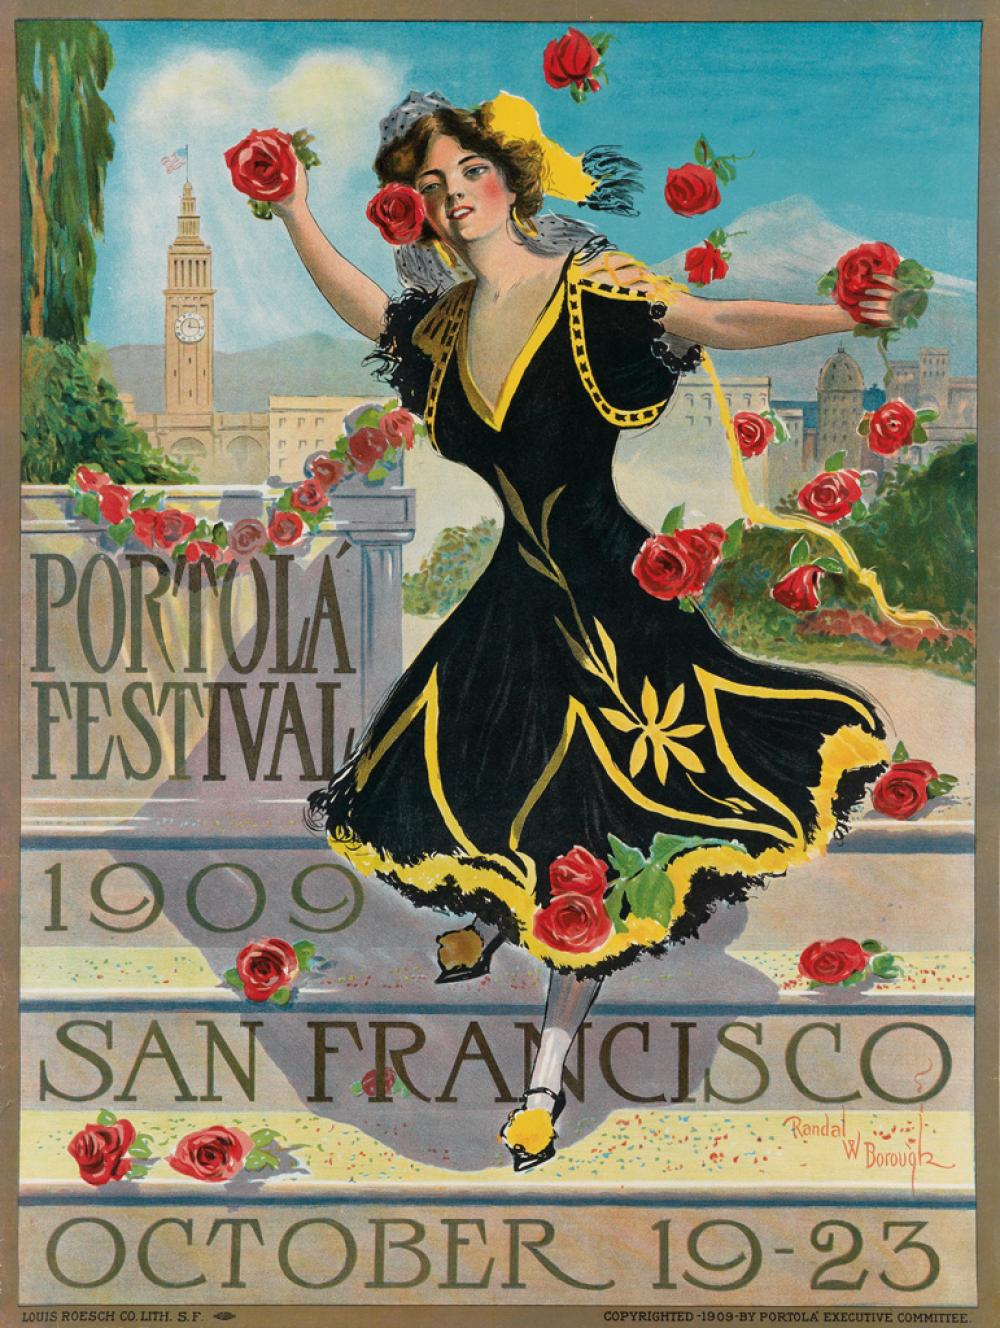 RANDAL W. BOROUGH (1878-1951). PORTOLA FESTIVAL / SAN FRANCISCO. 1909. 27x21 inches, 70x53 cm. Louis Roesch Co., San Francisco.